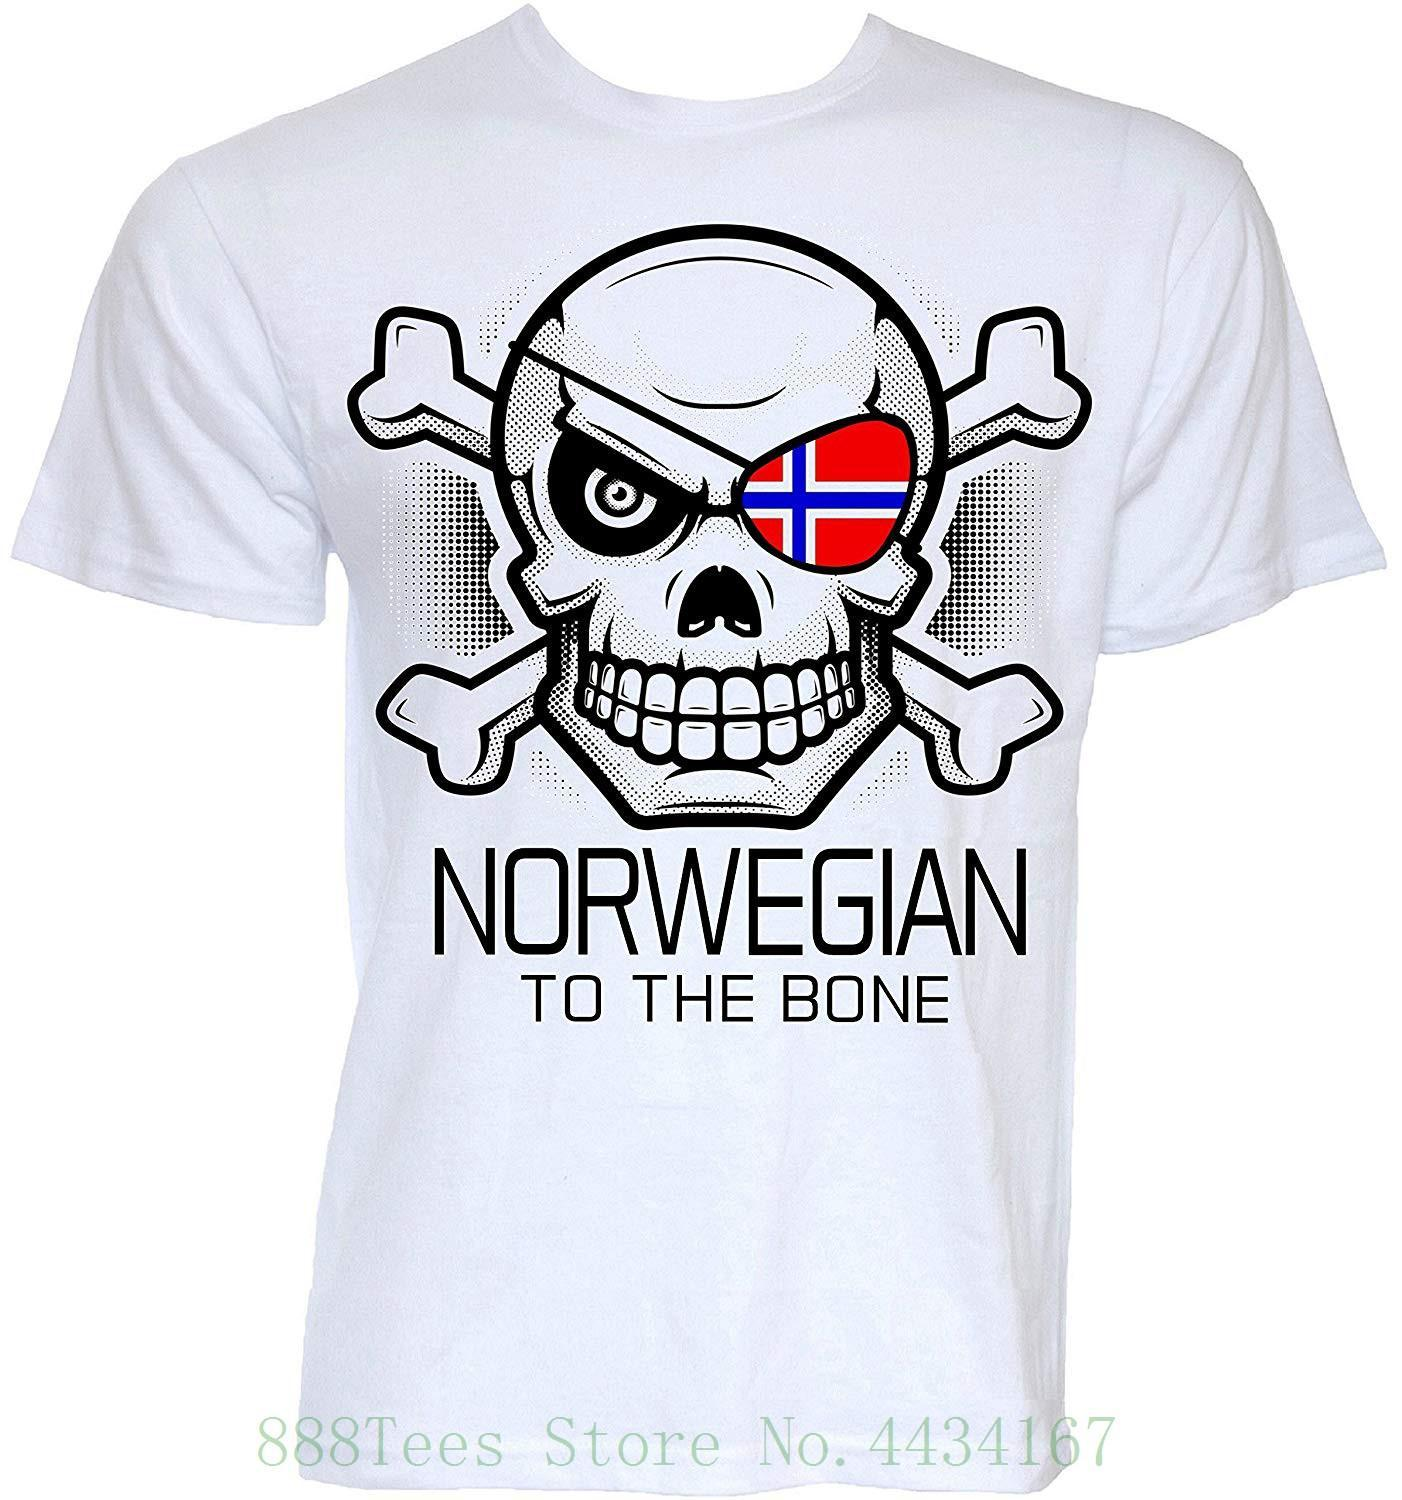 8f155be31f Beat Tees Clothing Mens Funny Novelty Norwegian To The Bone Joke Norway  Flag Slogan Gifts T Shirts Short Sleeve Cotton T Shirts Fitted Shirts From  Yubin05, ...